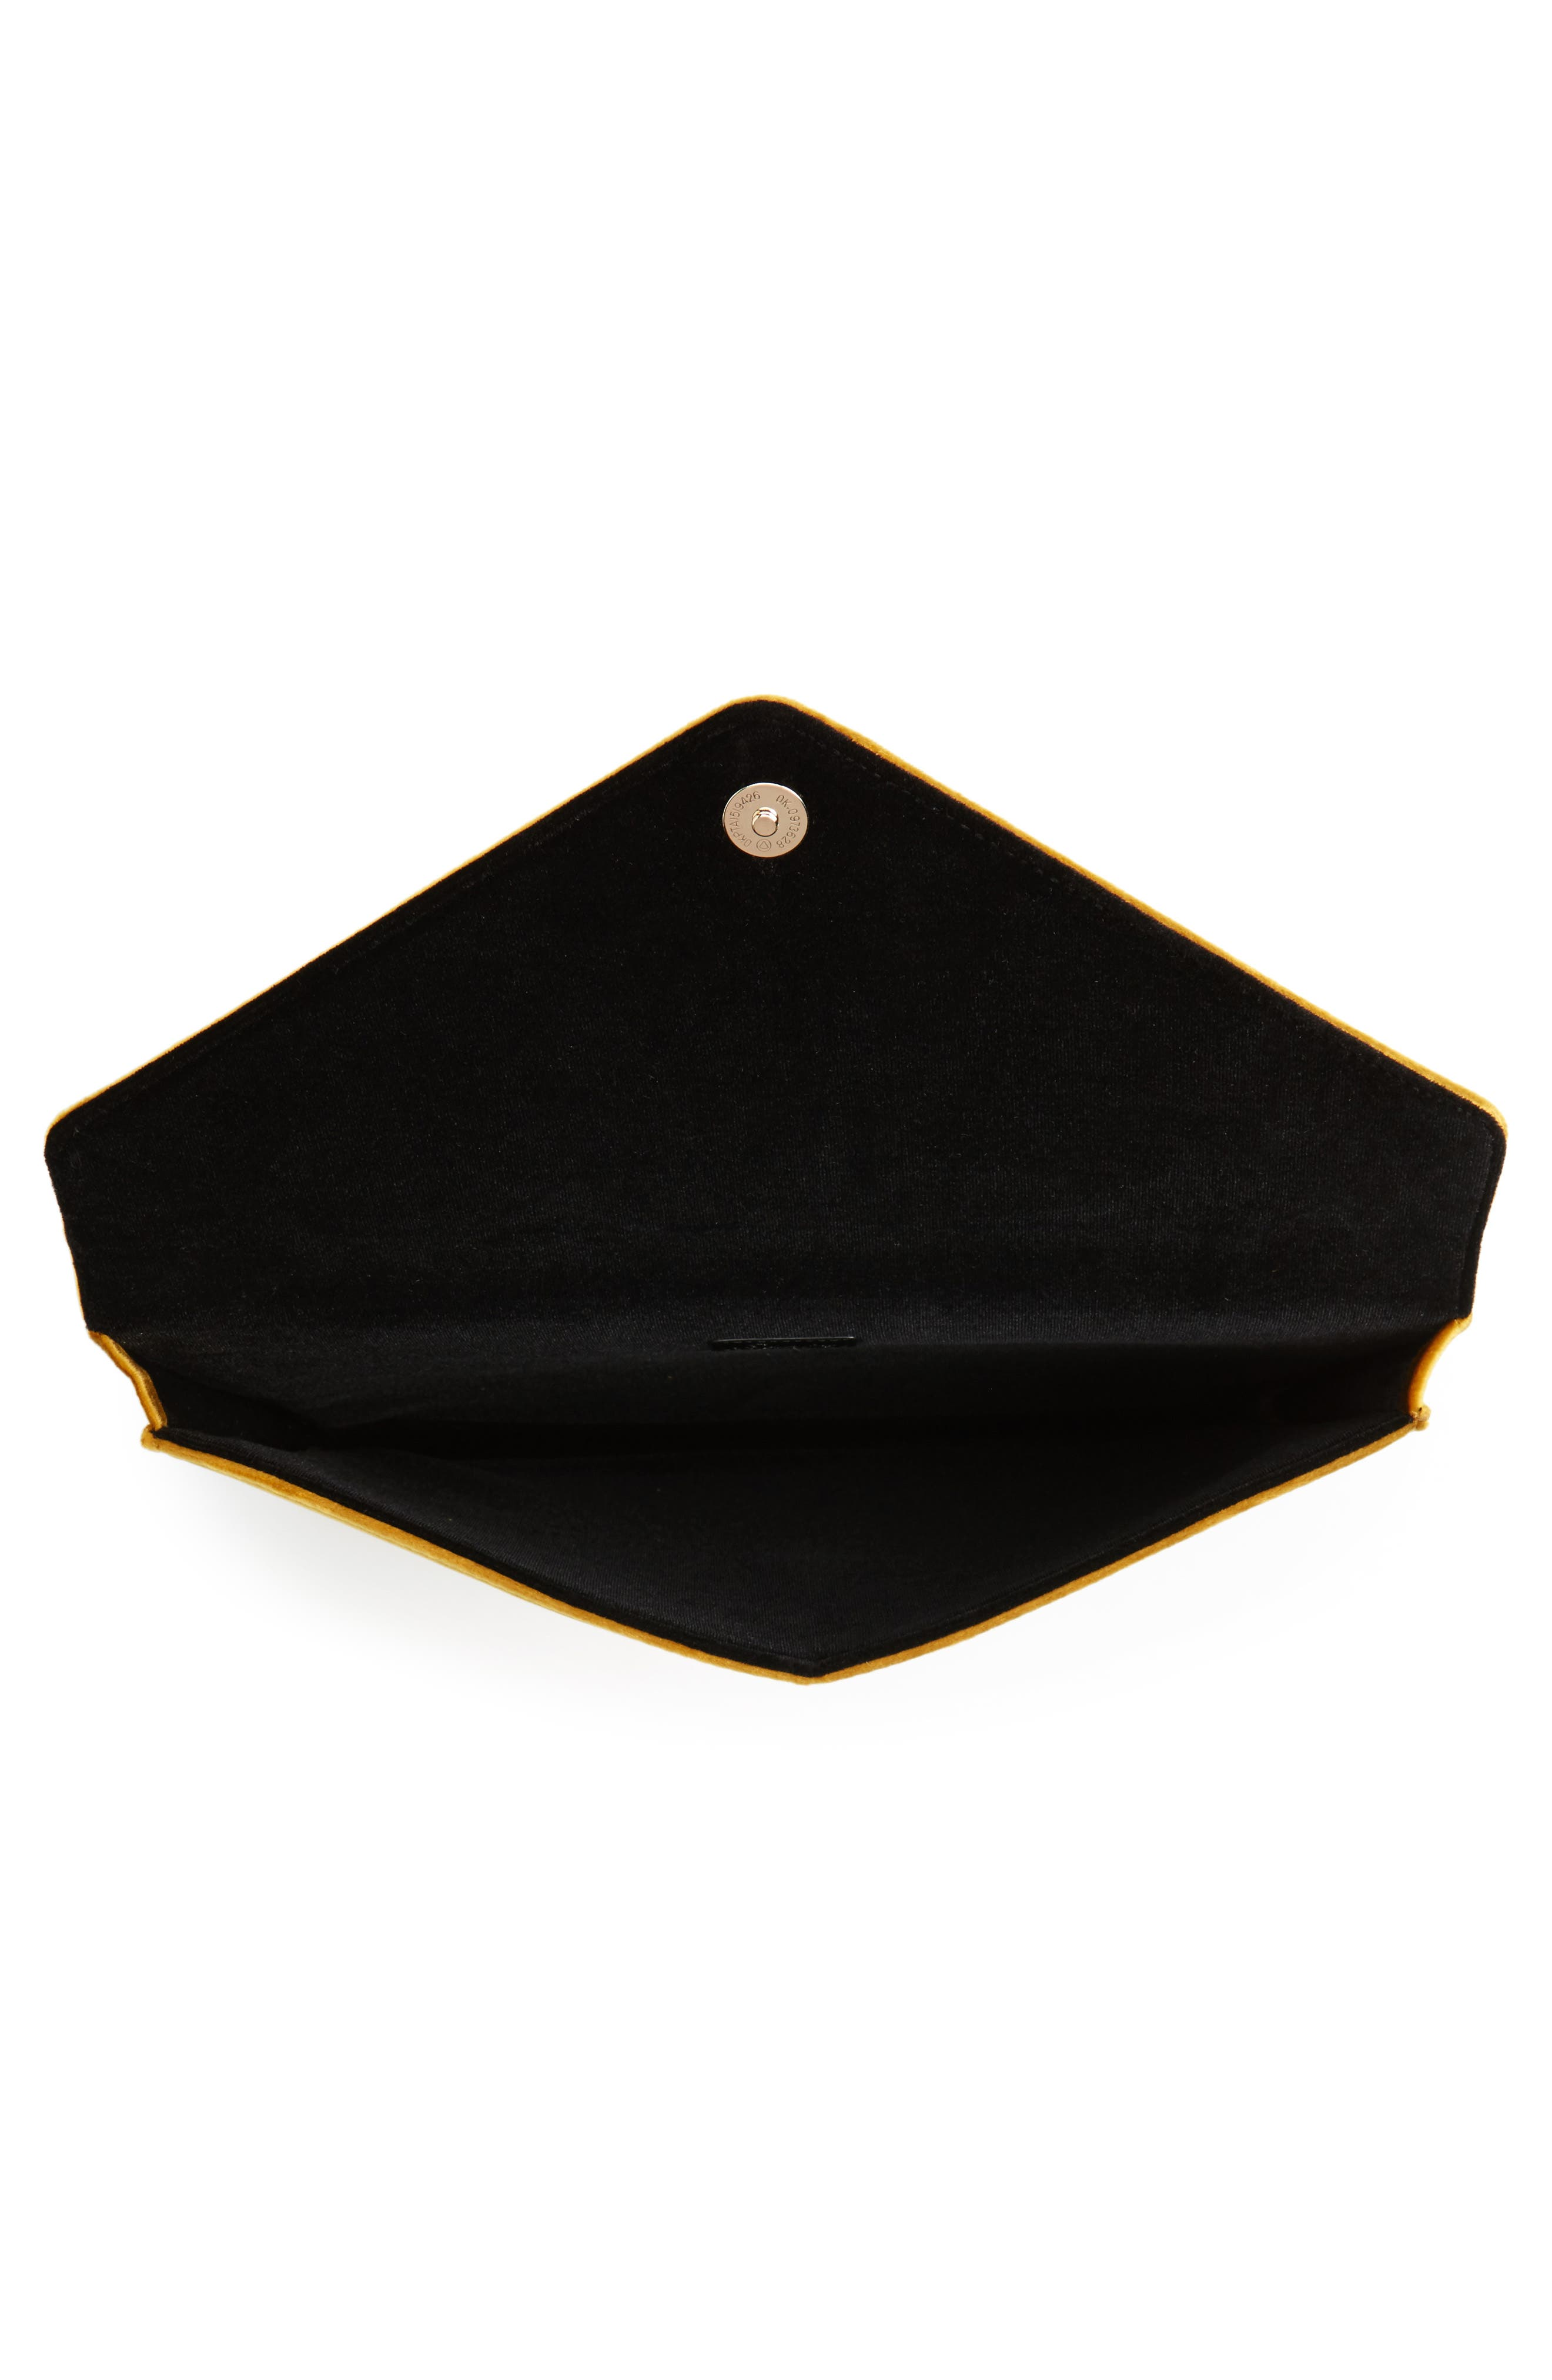 Canary Velvet Laptop Clutch,                             Alternate thumbnail 2, color,                             710